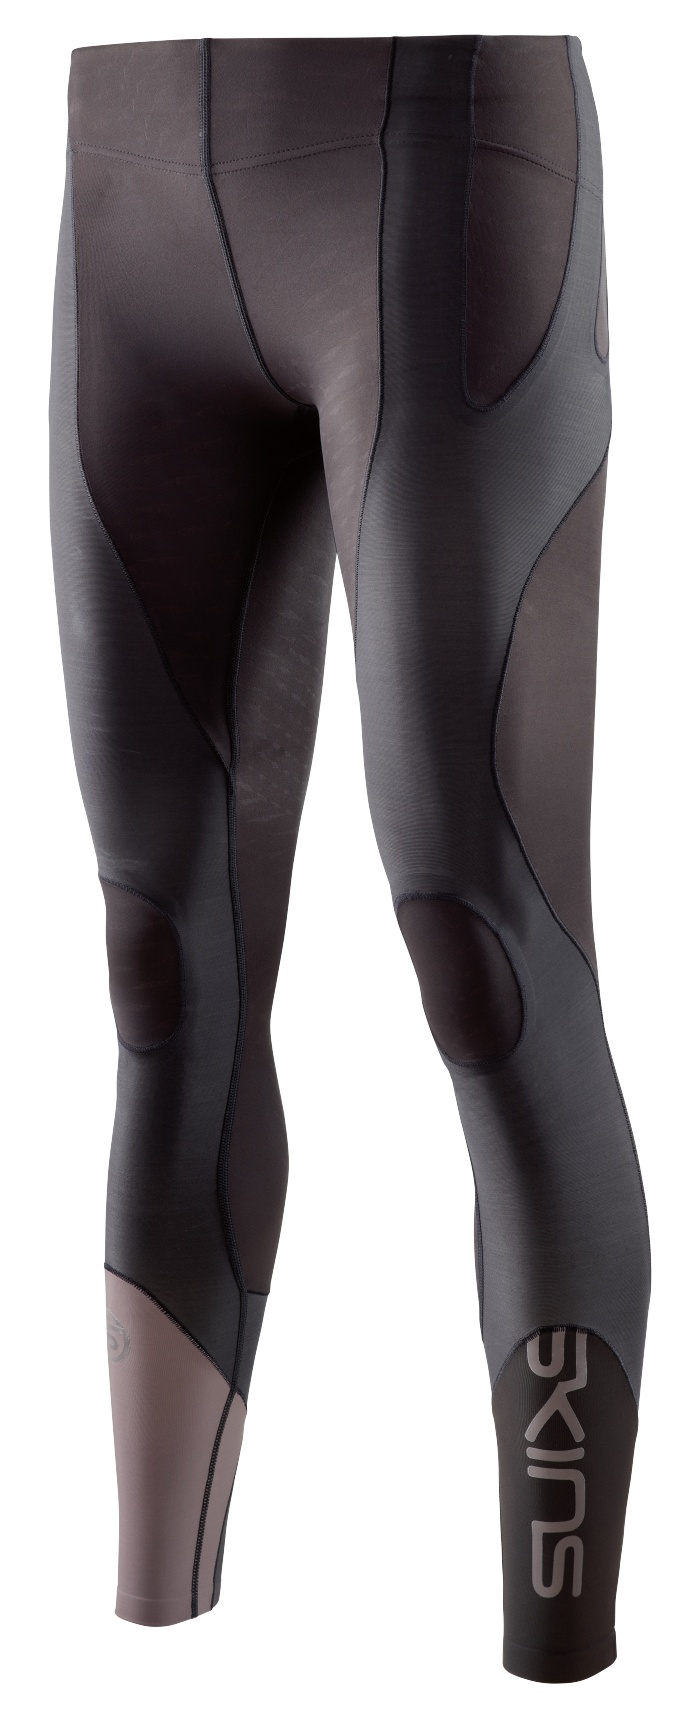 K-Proprium Womens Long Tights Espresso